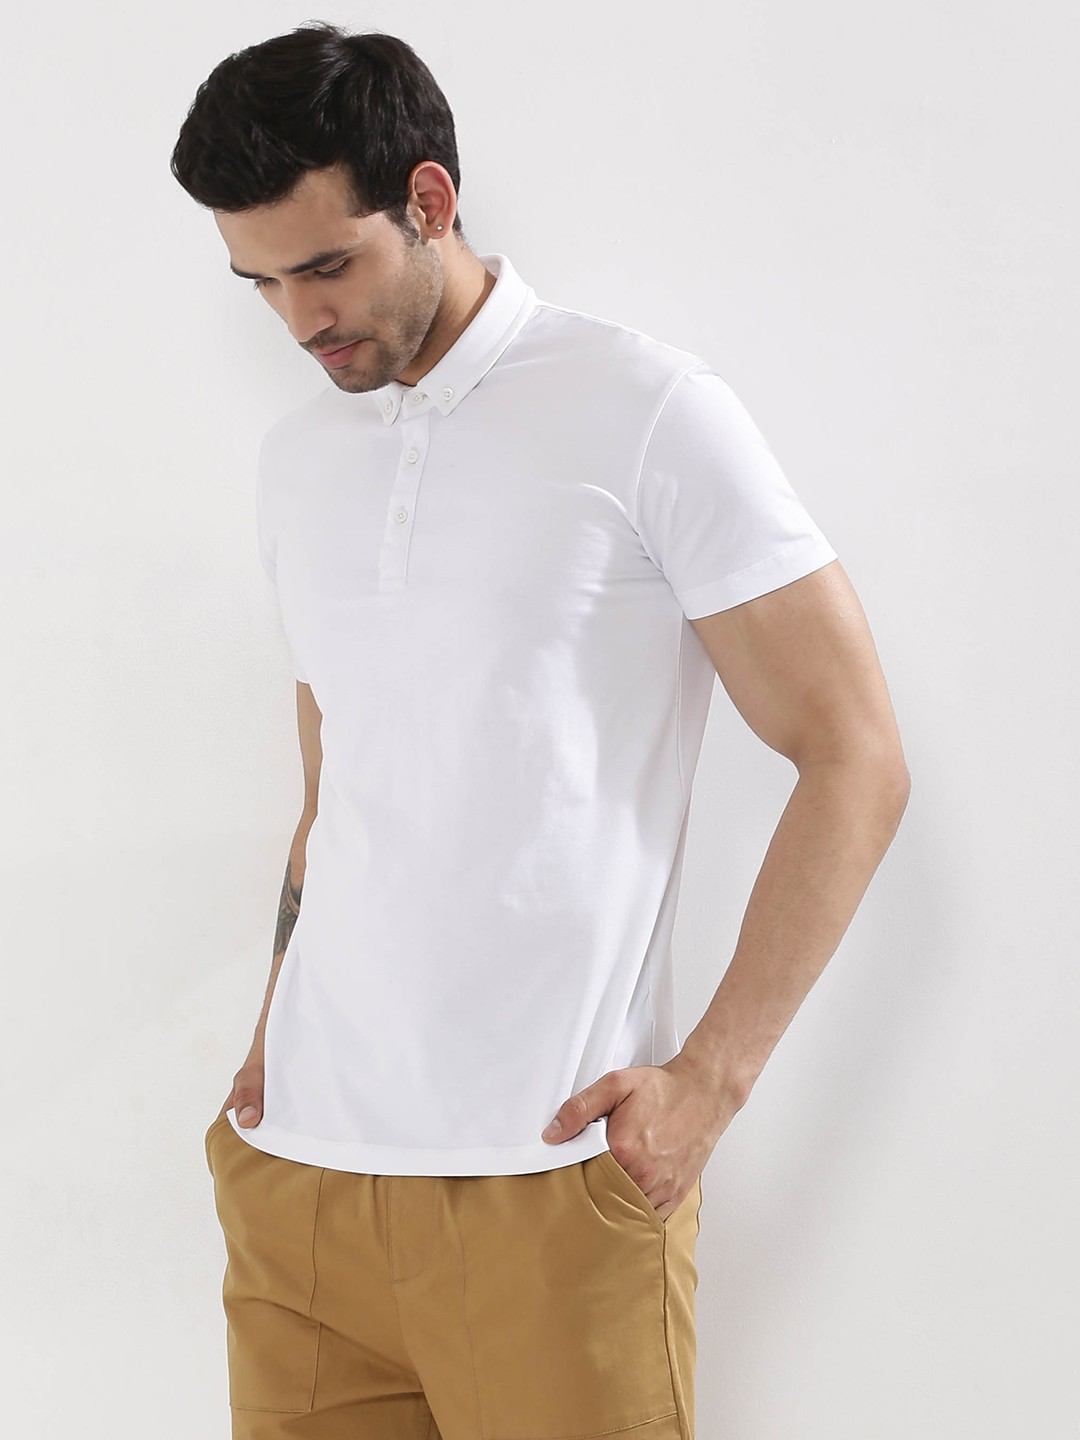 Buy koovs button down polo shirt for men men 39 s white for Where to buy button down shirts